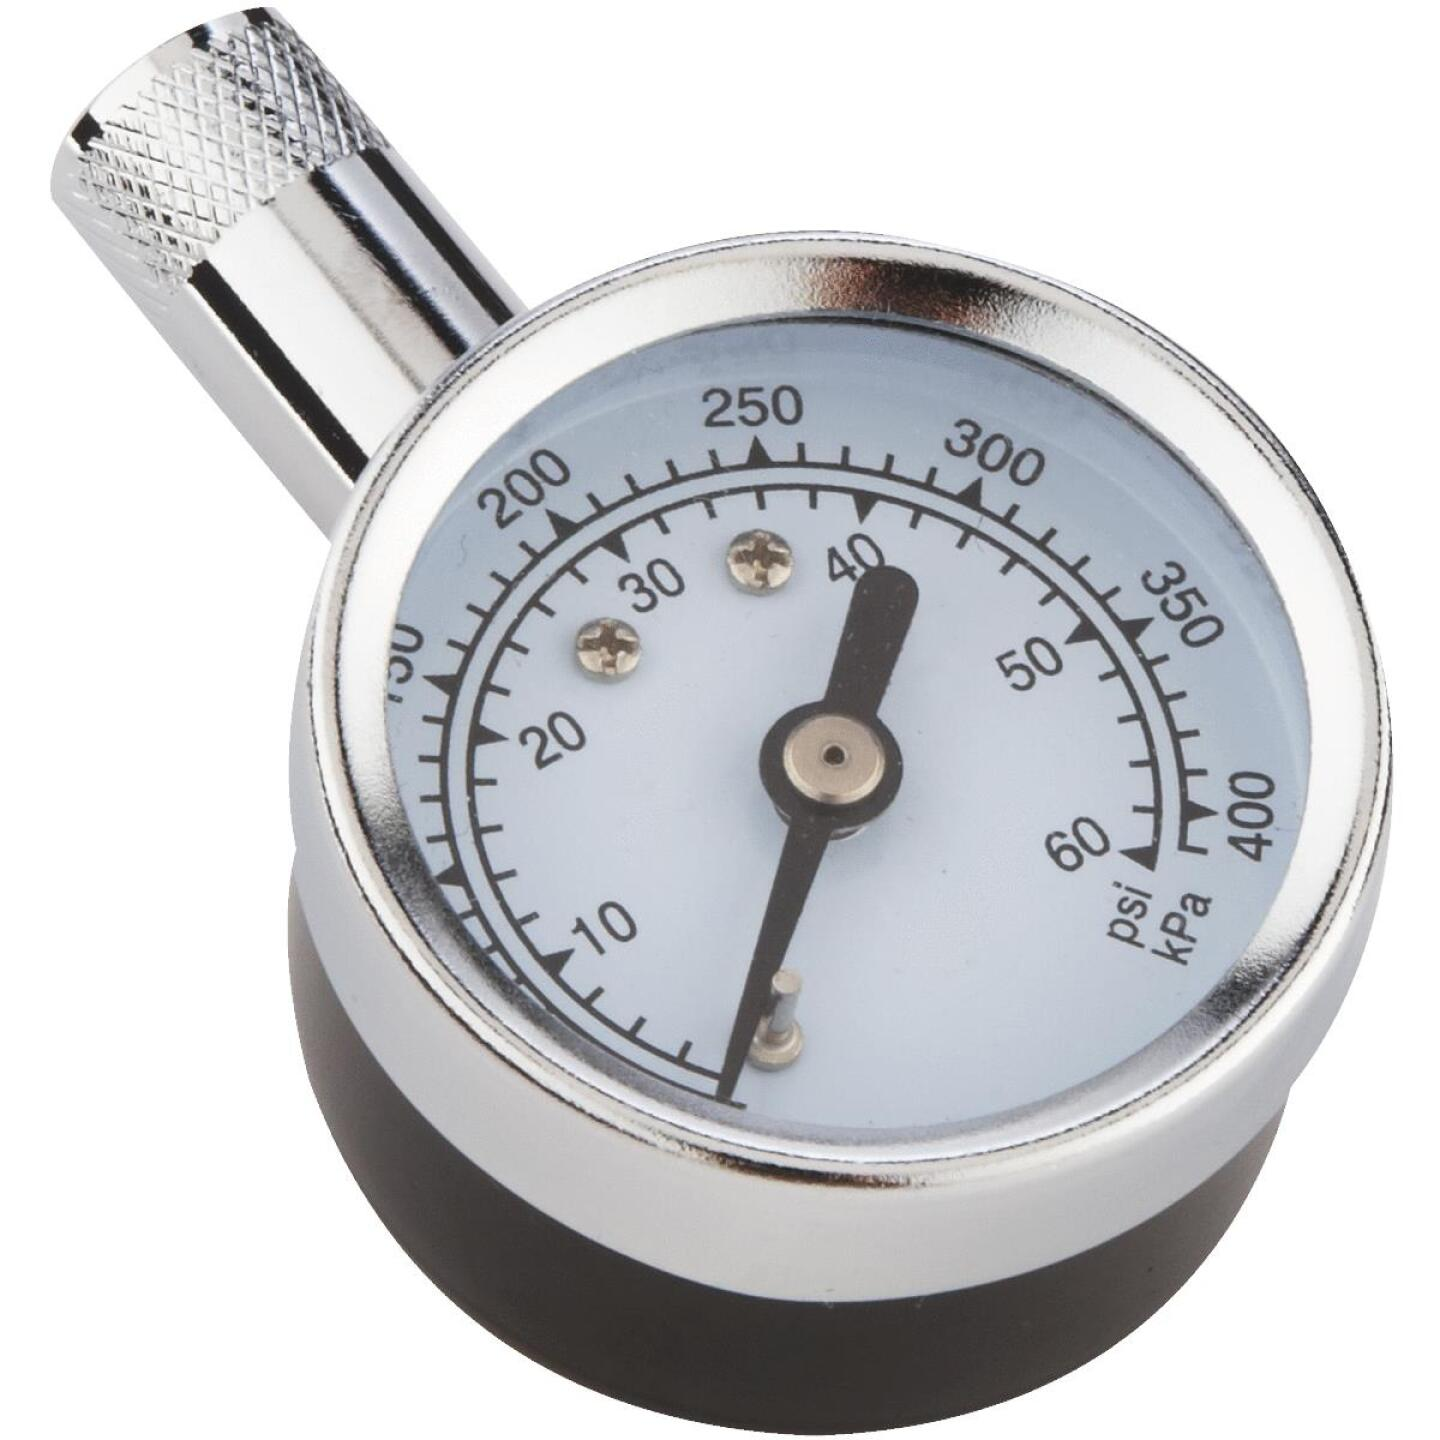 Custom Accessories 5-60 Psi Chrome-plated Tire Gauge Image 1